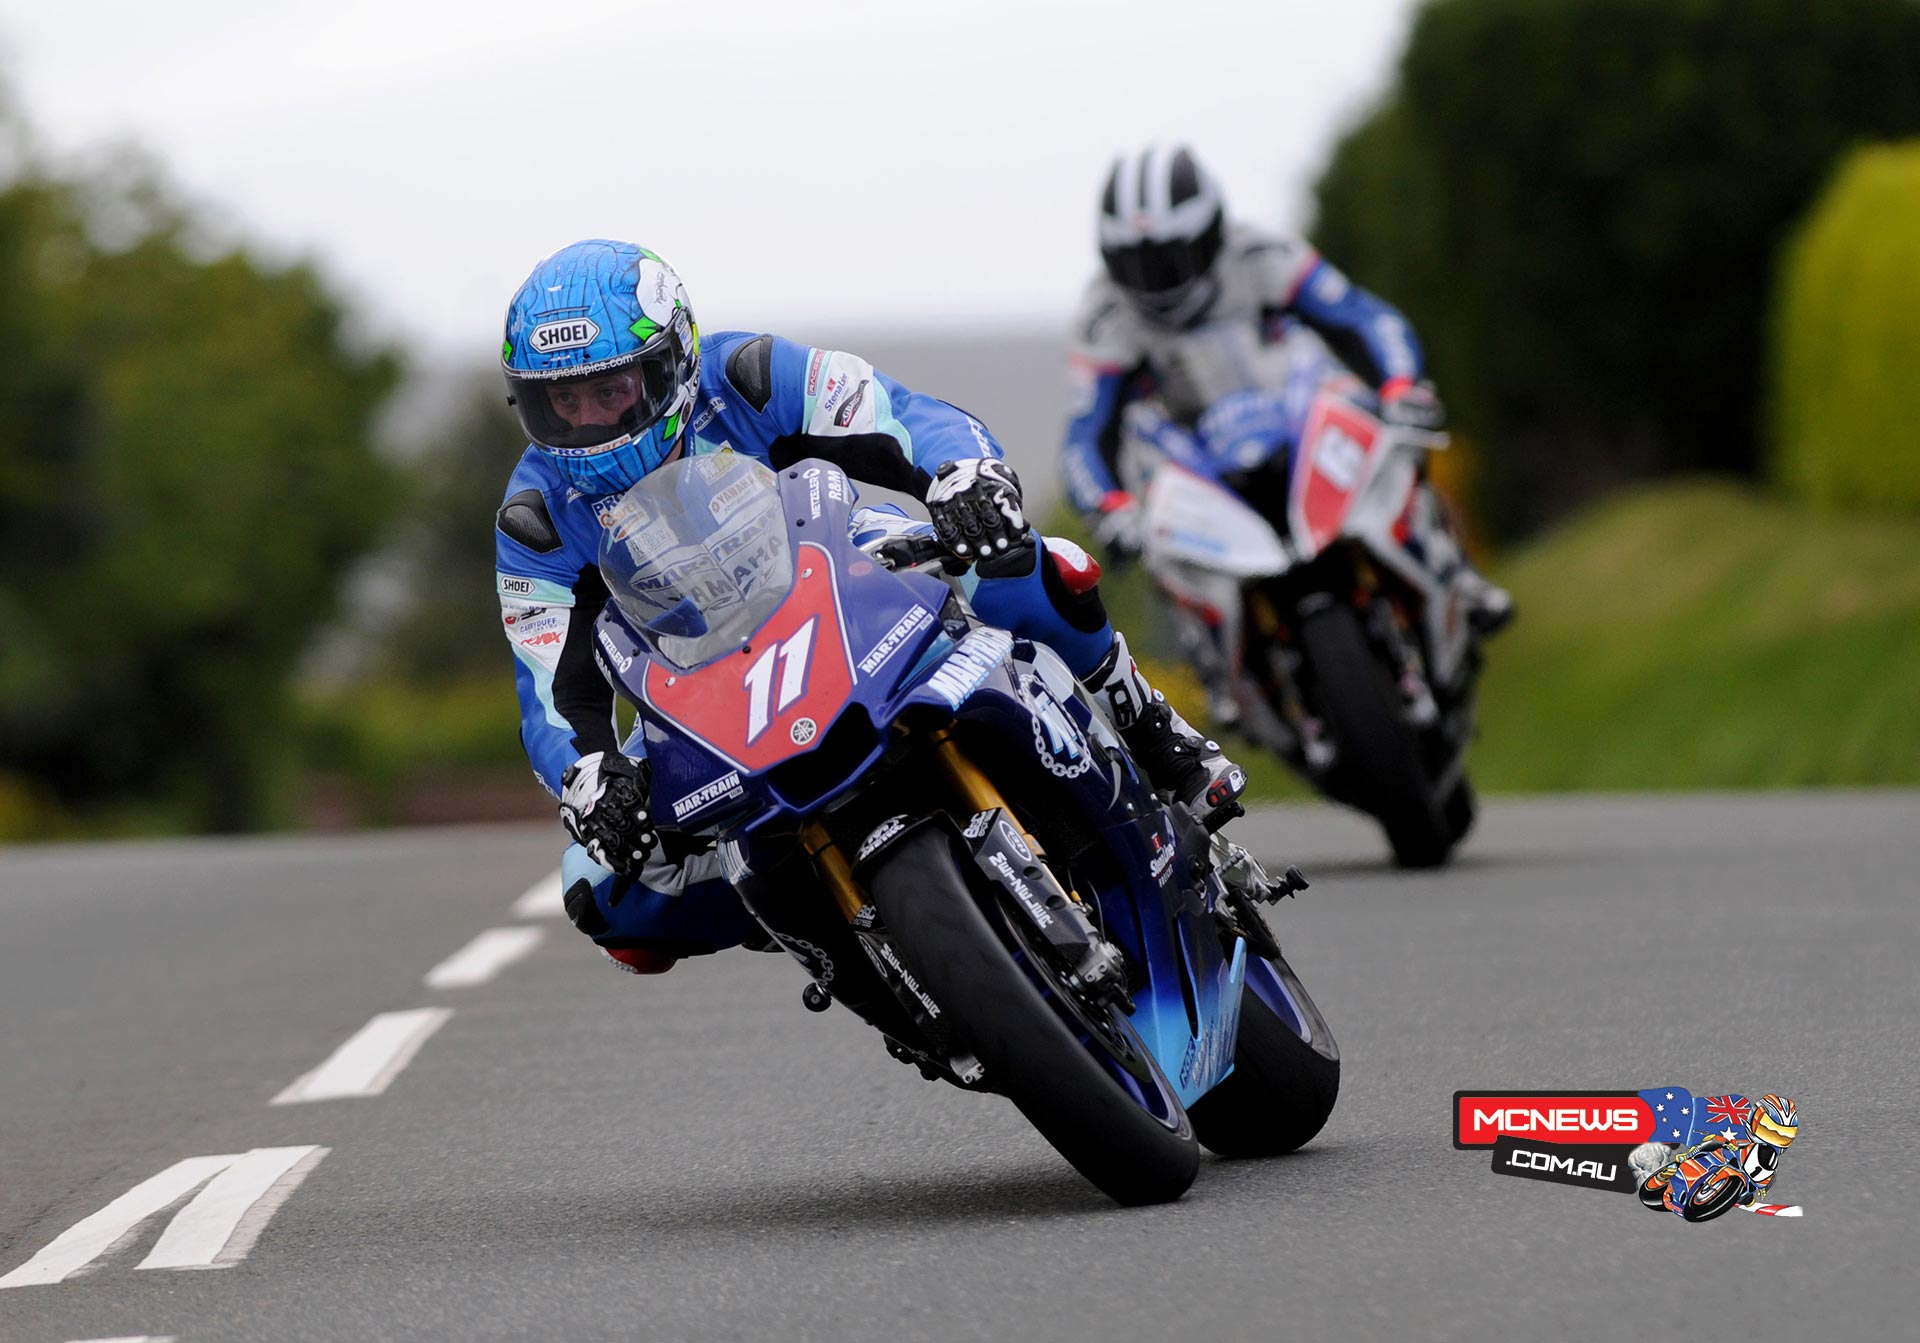 Isle of Man TT 2015 - Practice - Dean Harrison